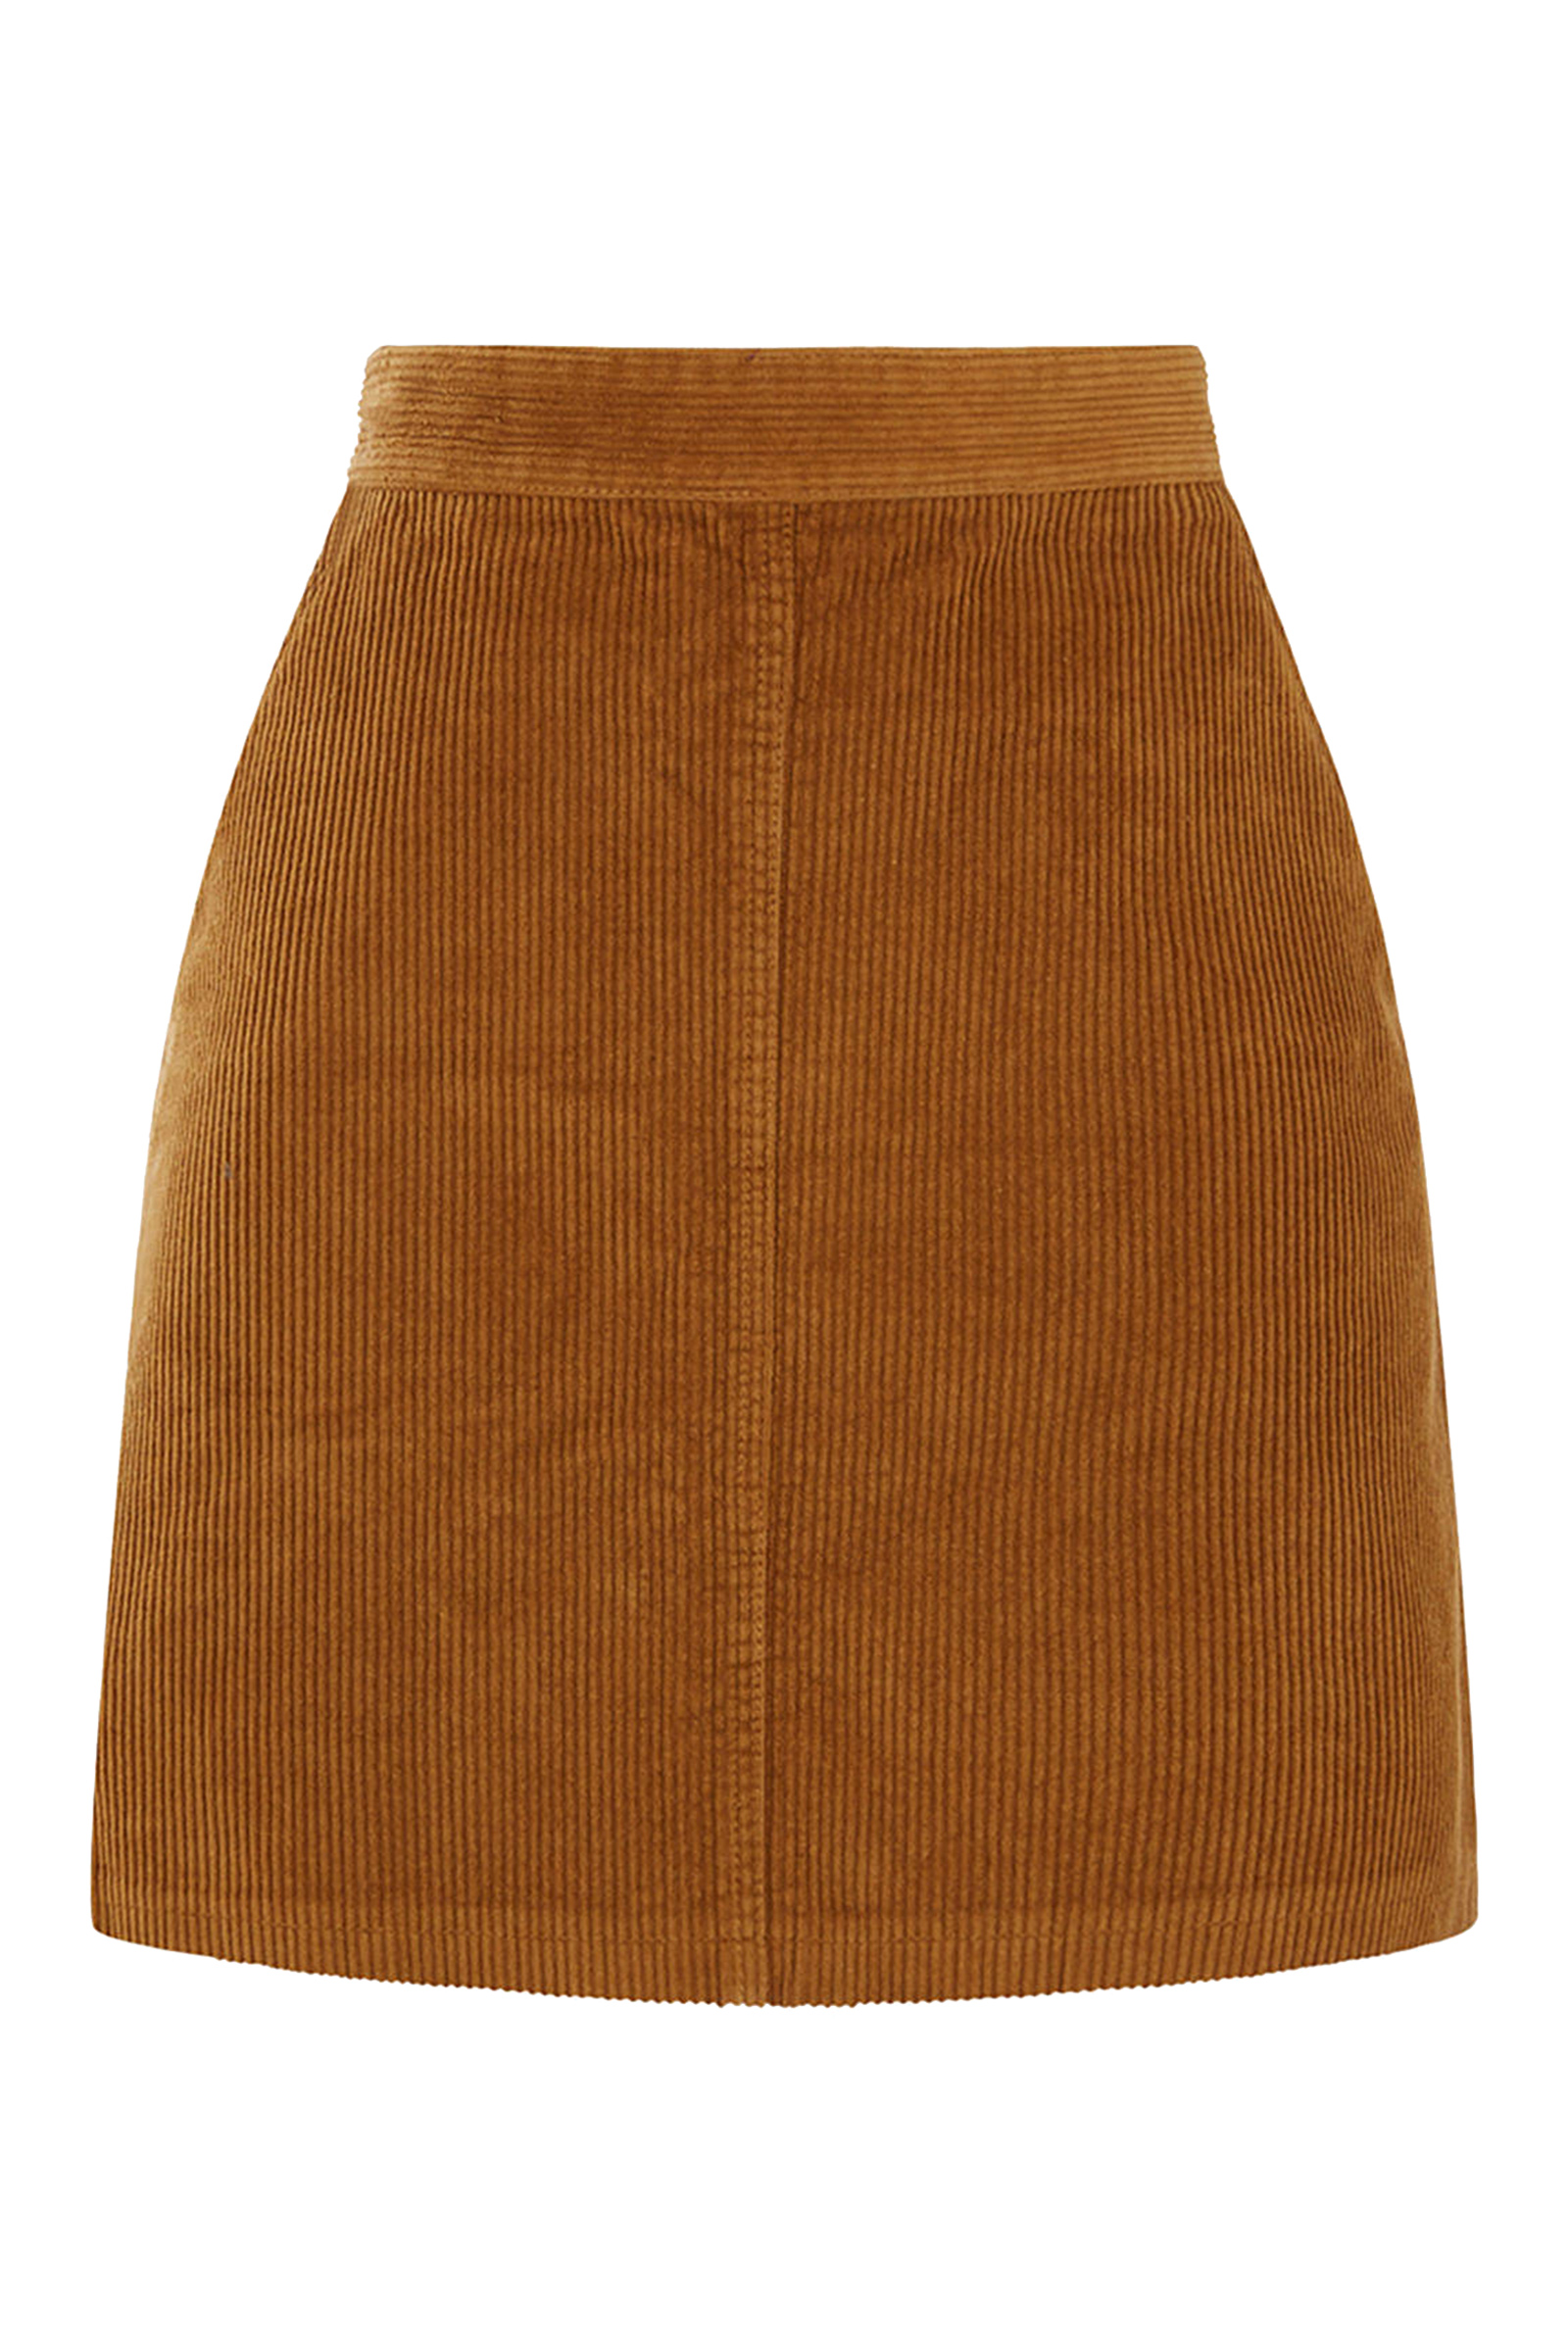 Click to Buy Warehouse Skirt